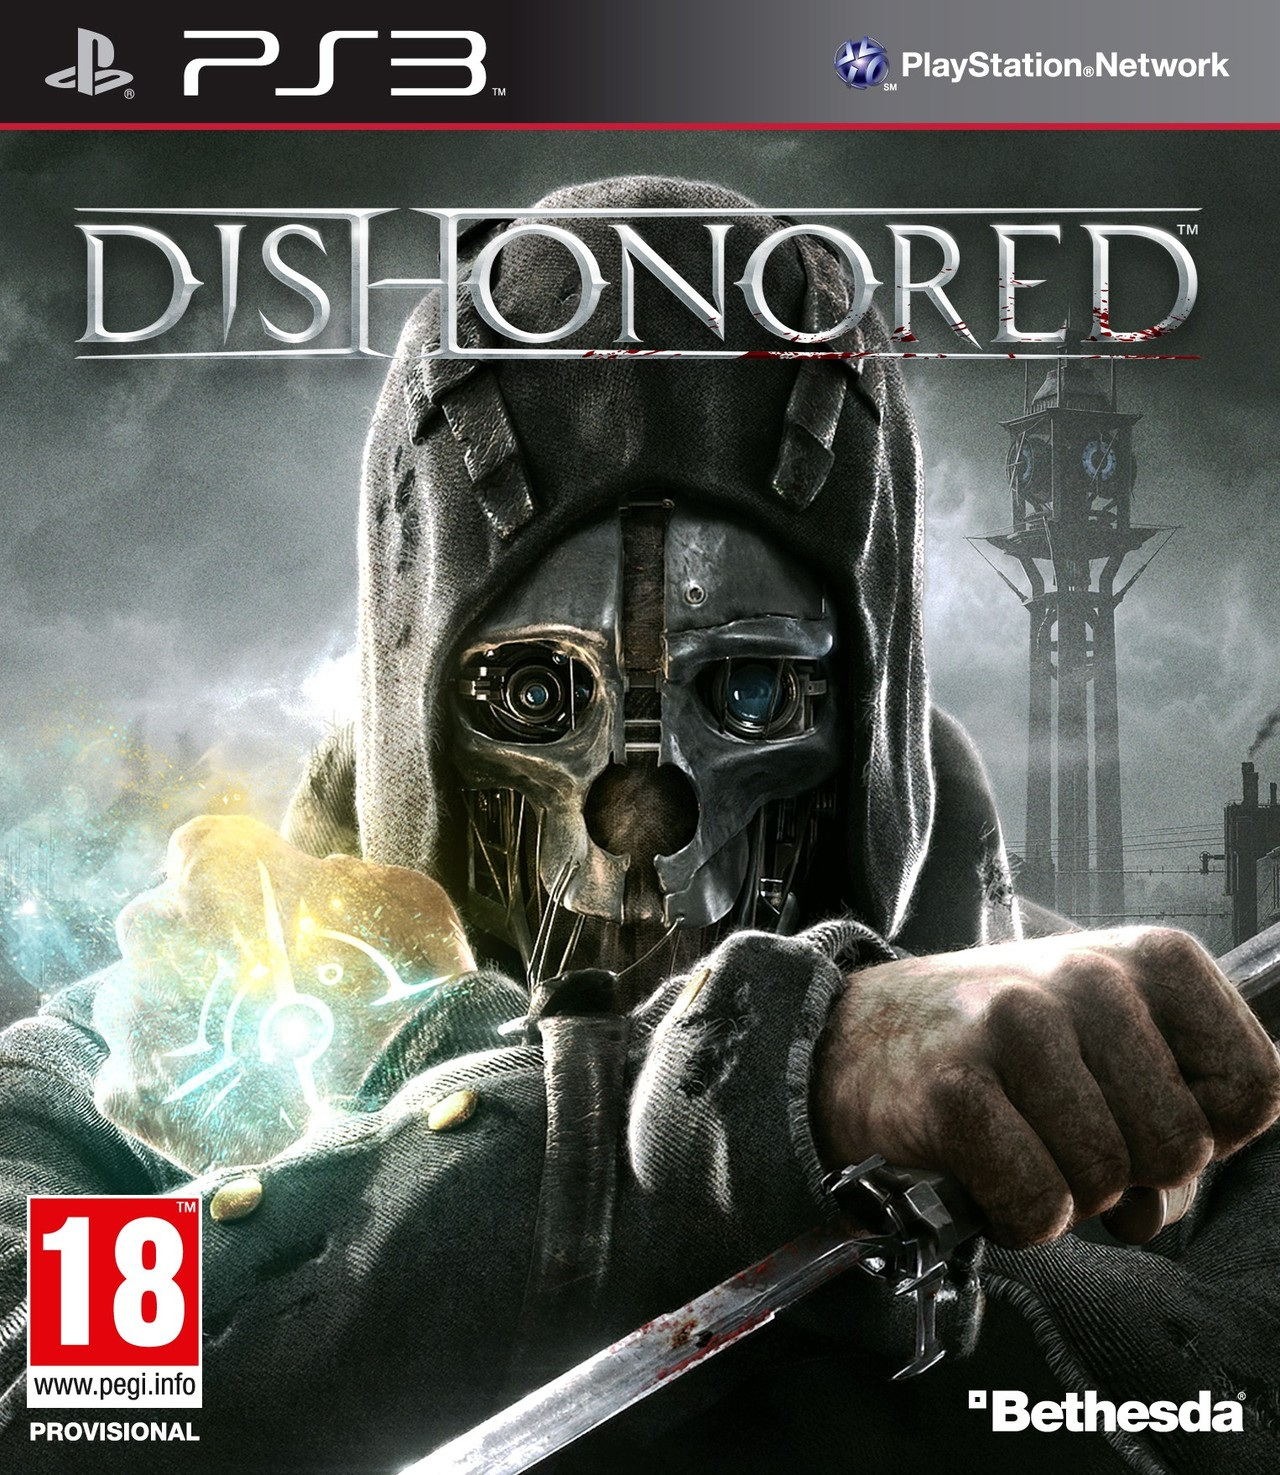 https://i2.wp.com/image.jeuxvideo.com/images/jaquettes/00041409/jaquette-dishonored-playstation-3-ps3-cover-avant-g-1336660359.jpg